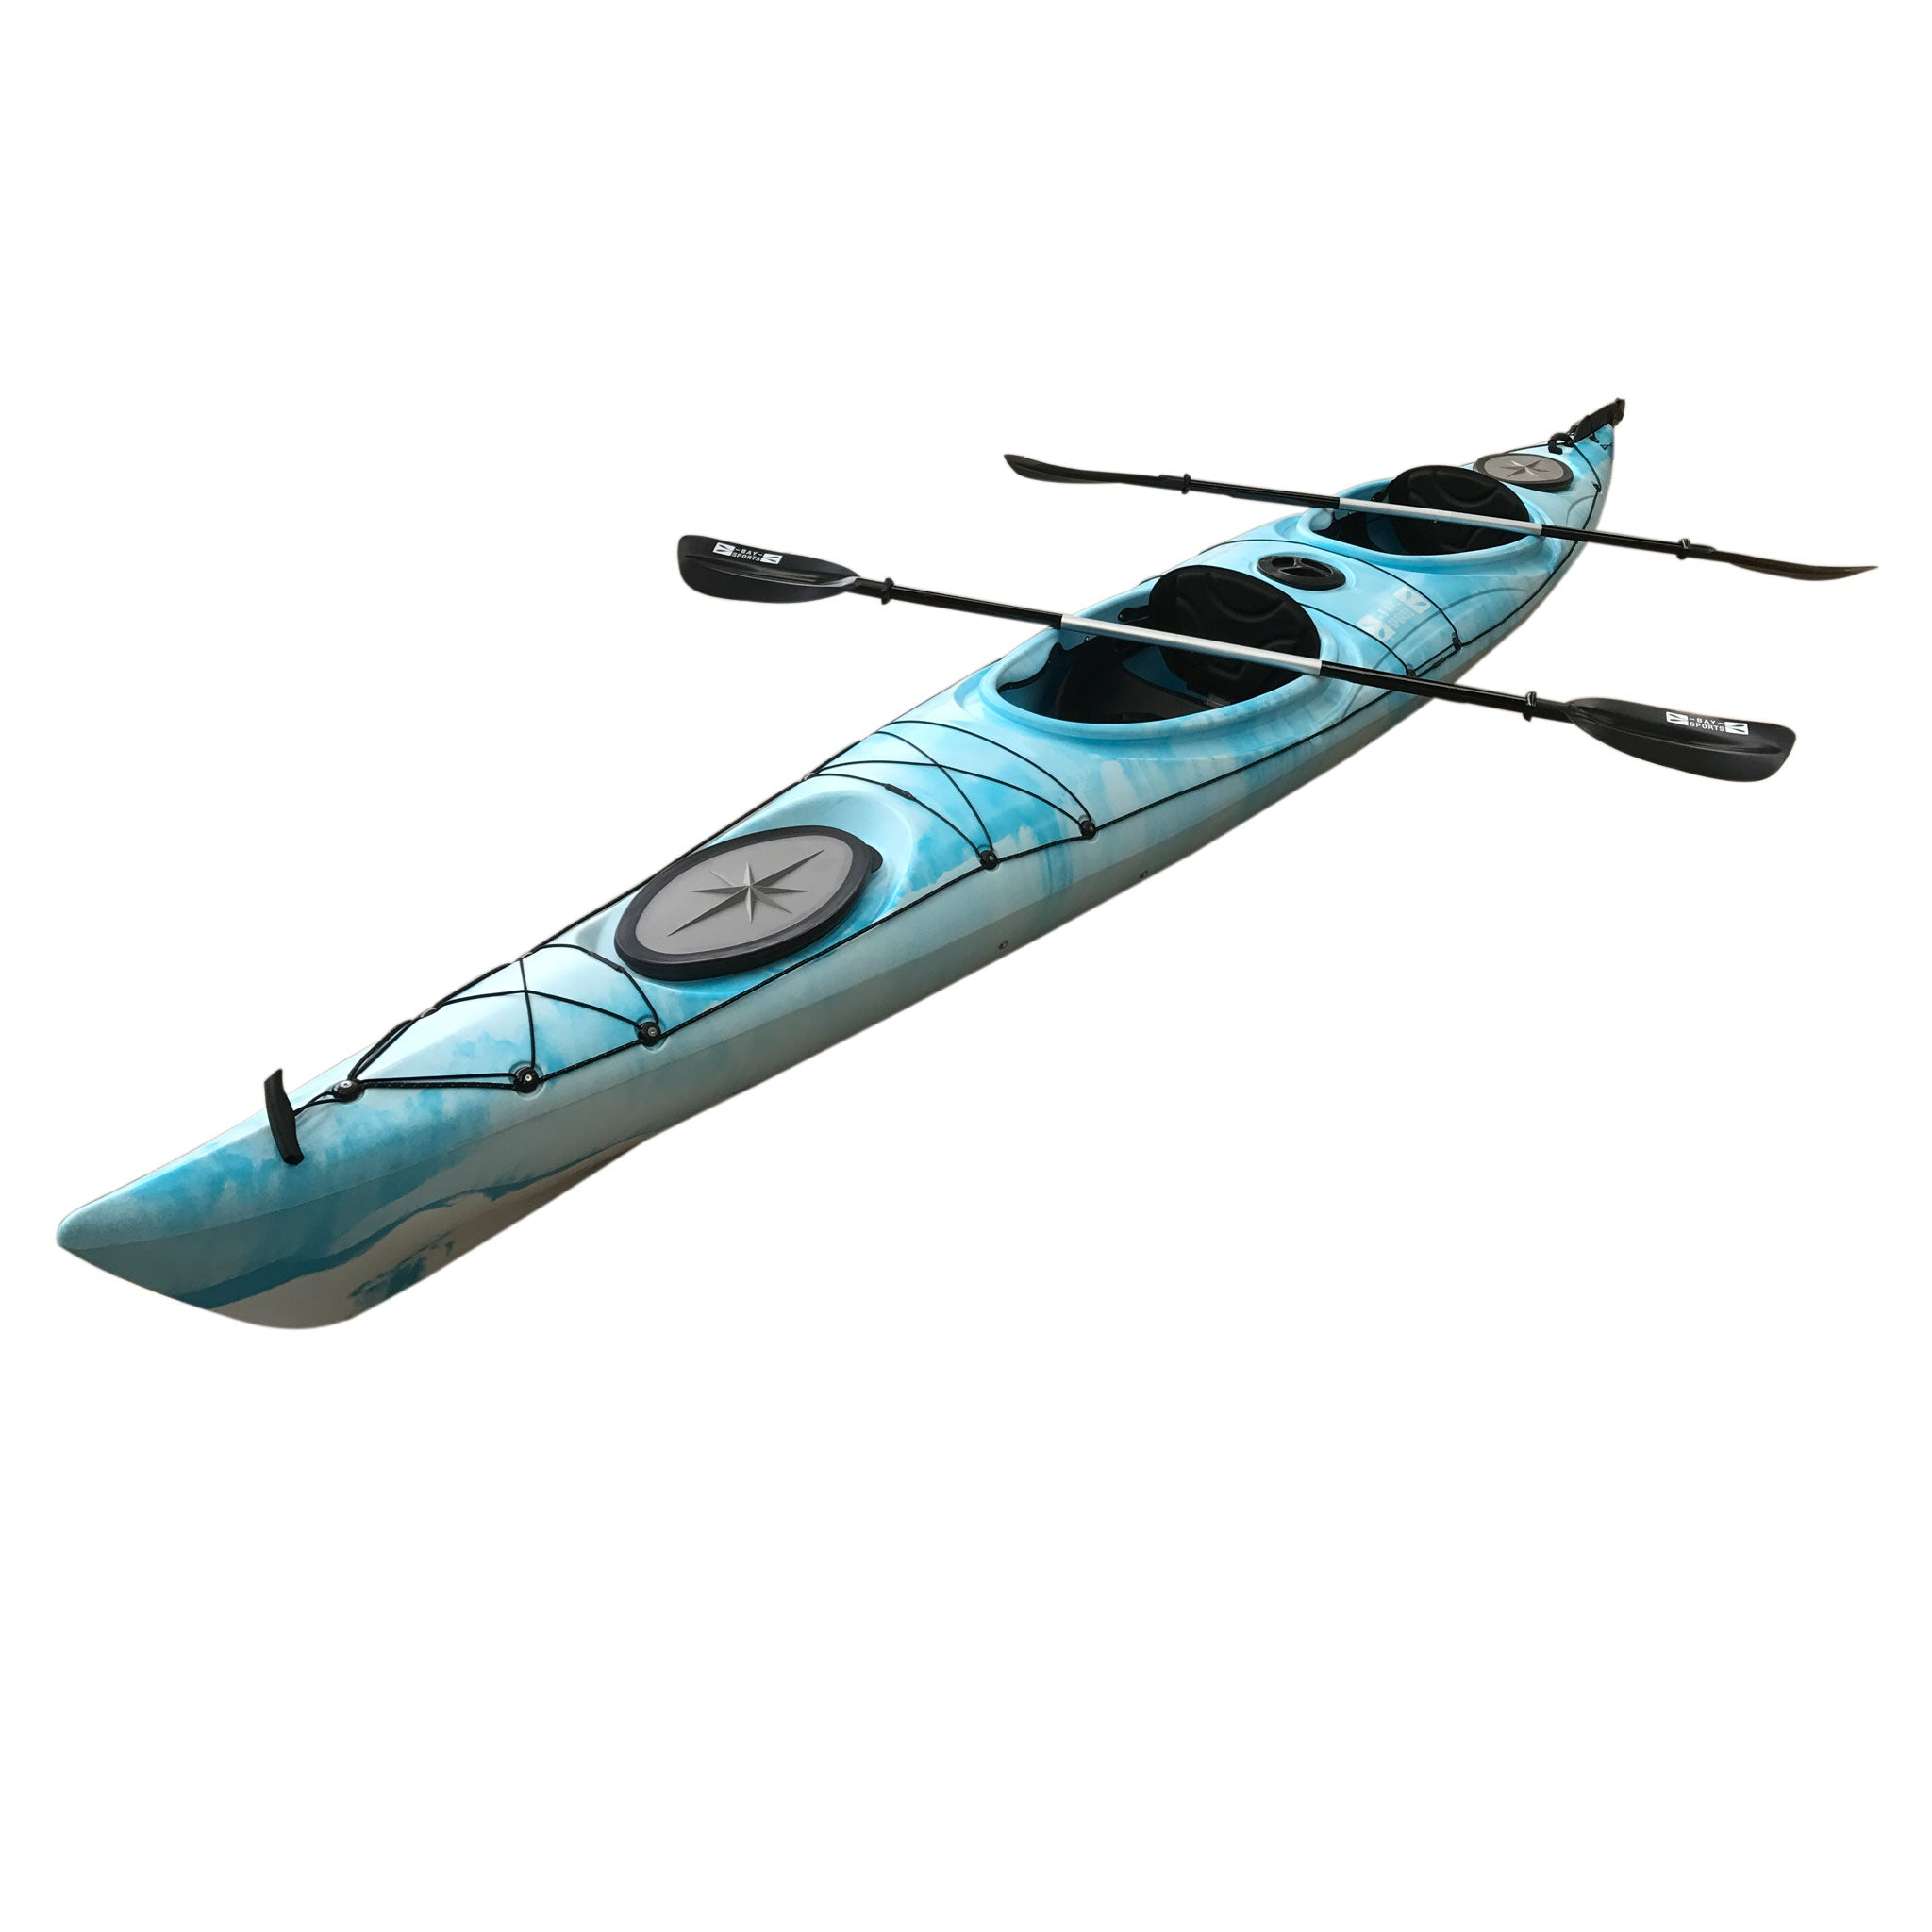 Bay Sports Hug Sit In 2 Person Double Touring Sea Kayak White Blue Side Angle